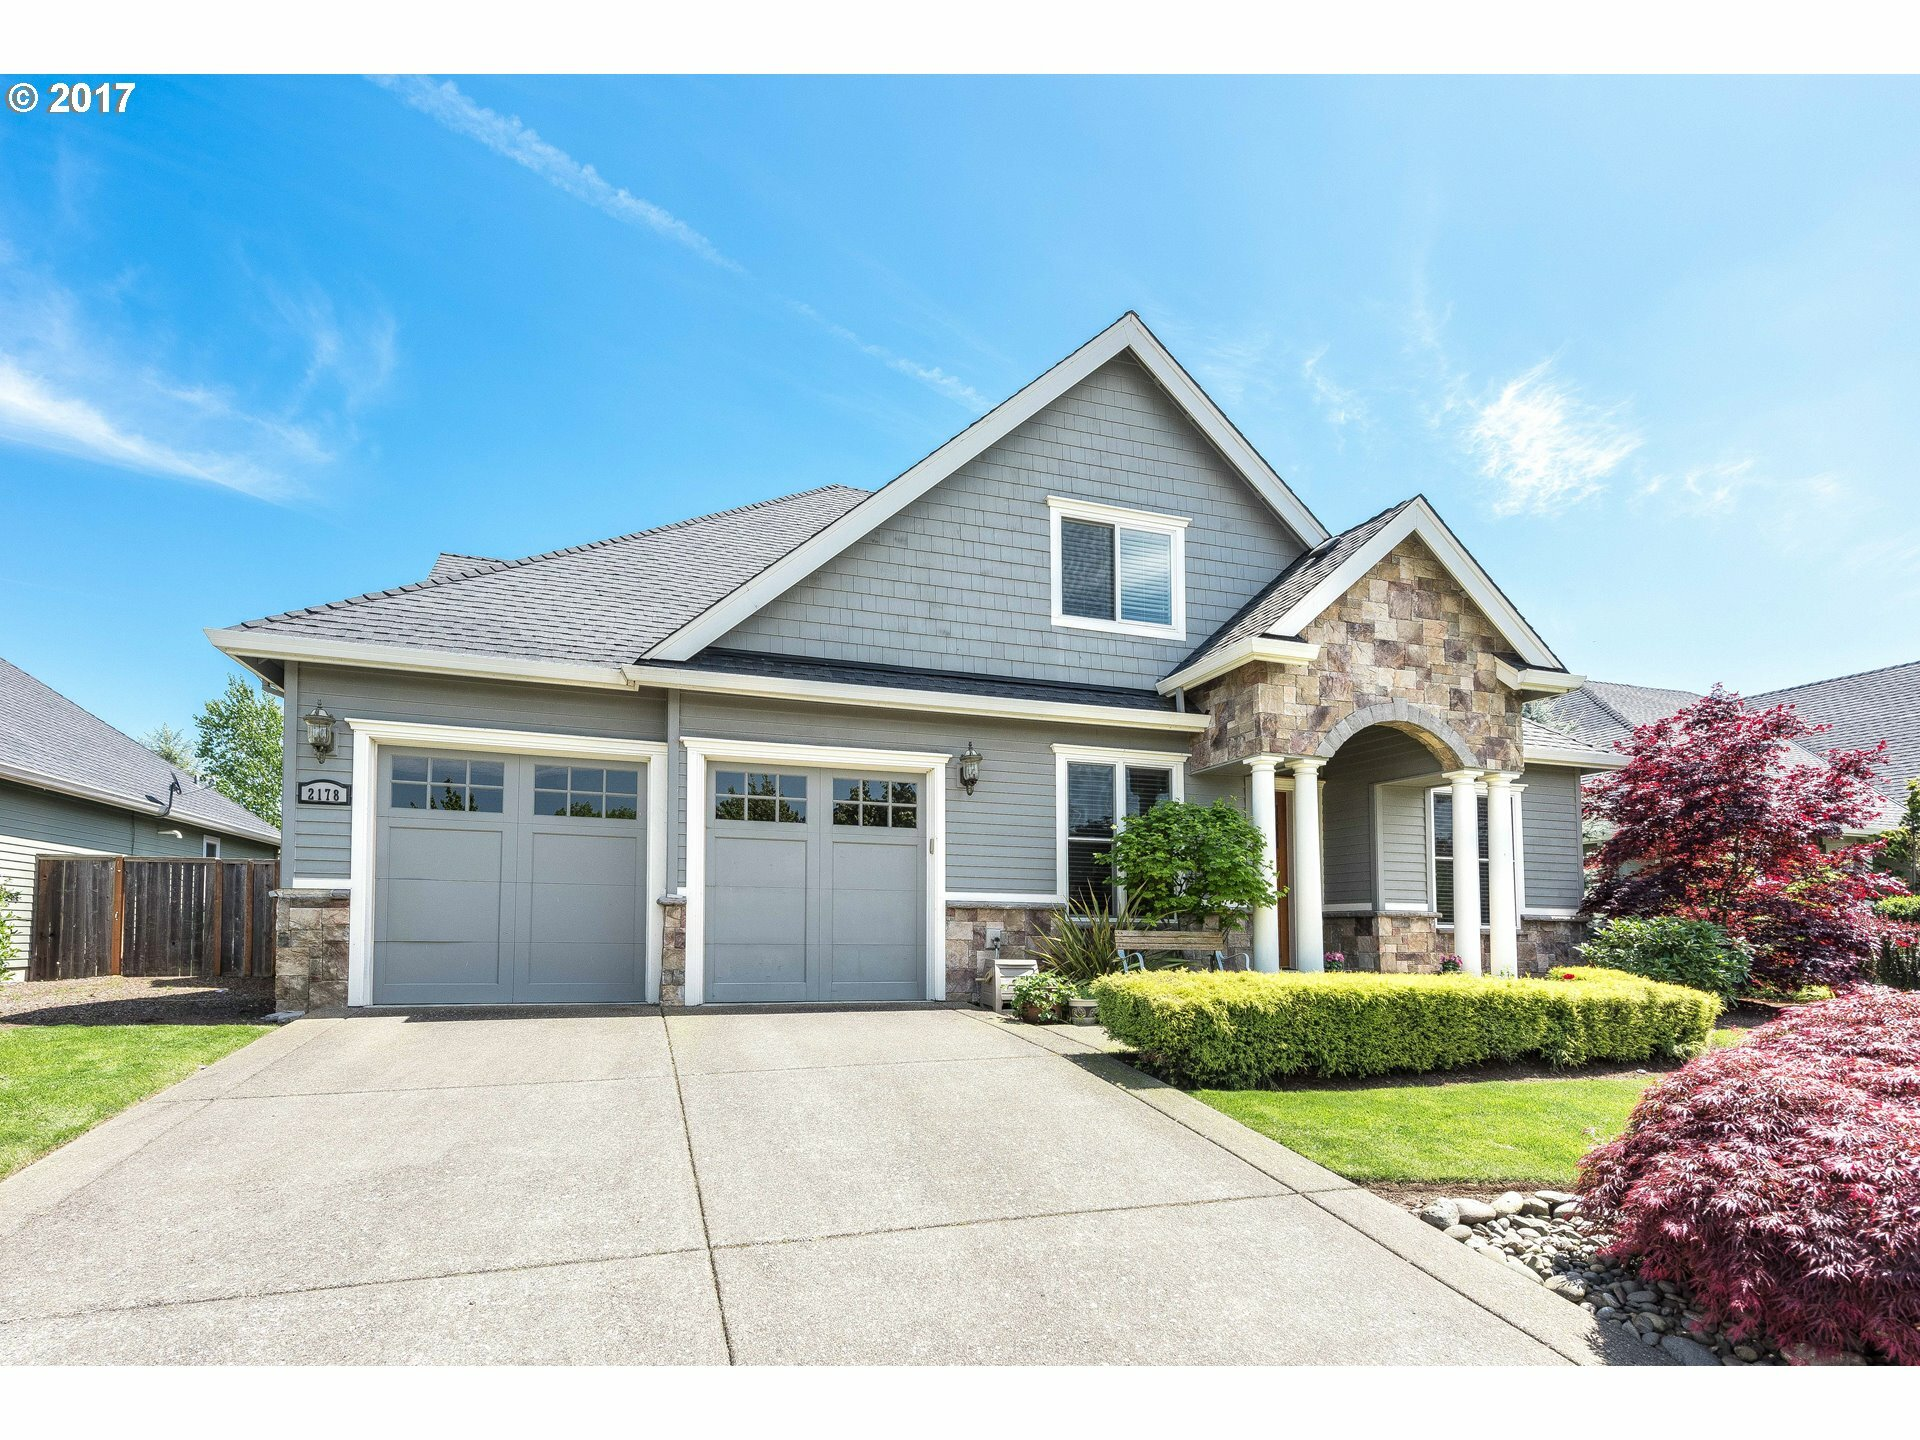 2178 Meridian Dr, Woodburn, OR - USA (photo 1)